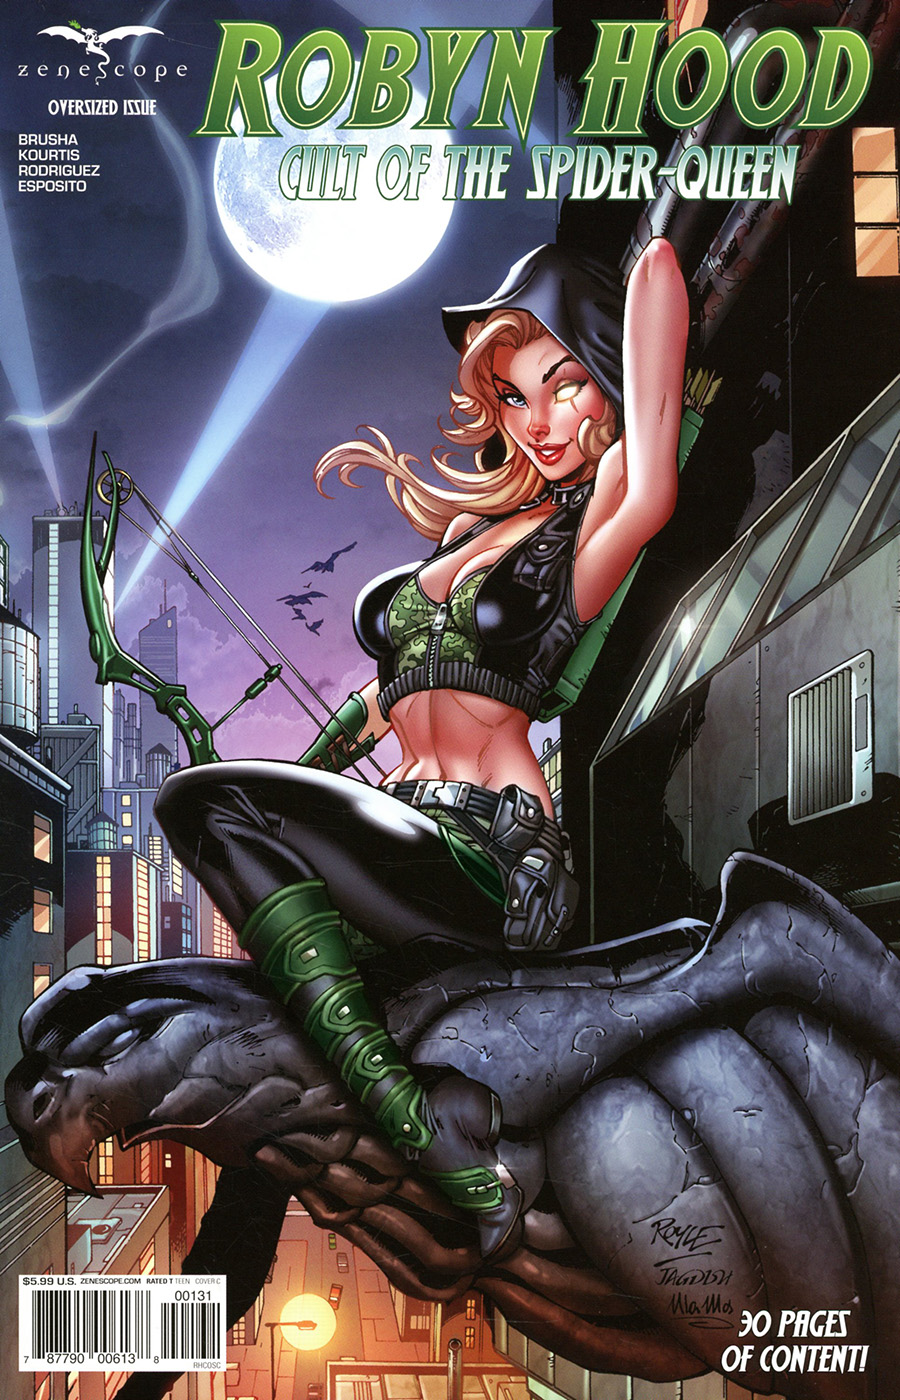 Grimm Fairy Tales Presents Robyn Hood Cult Of The Spider #1 (One Shot) Cover C John Royle